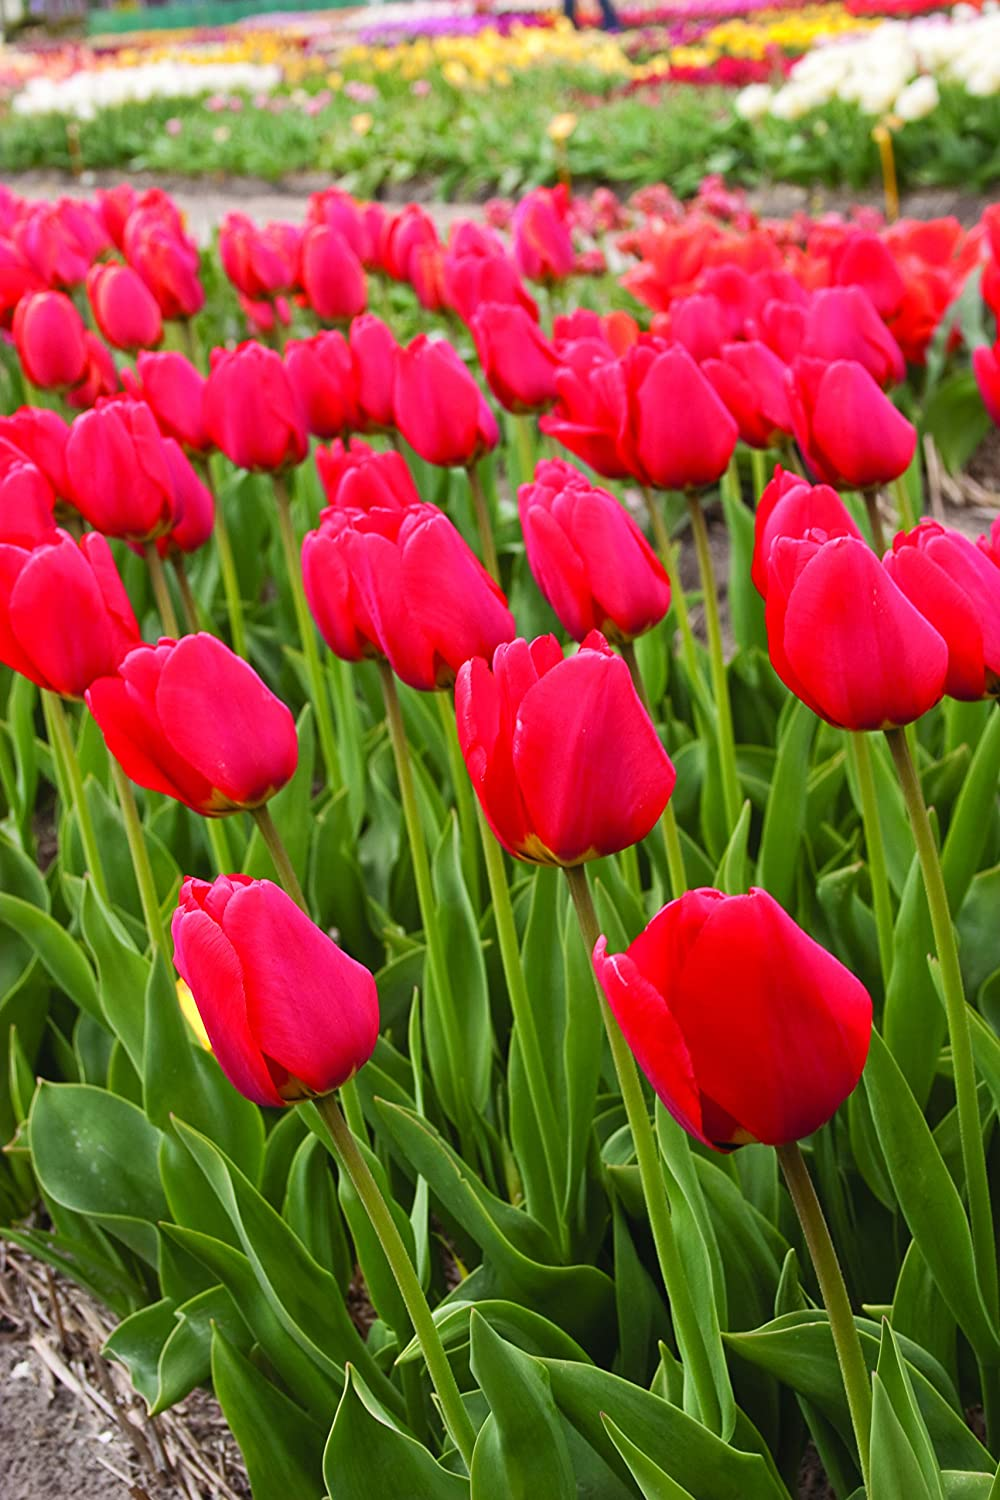 Red Tulips Darwin In a popularity Hybrids 25 Bulbs Special price for a limited time Van - Eijk Tulip